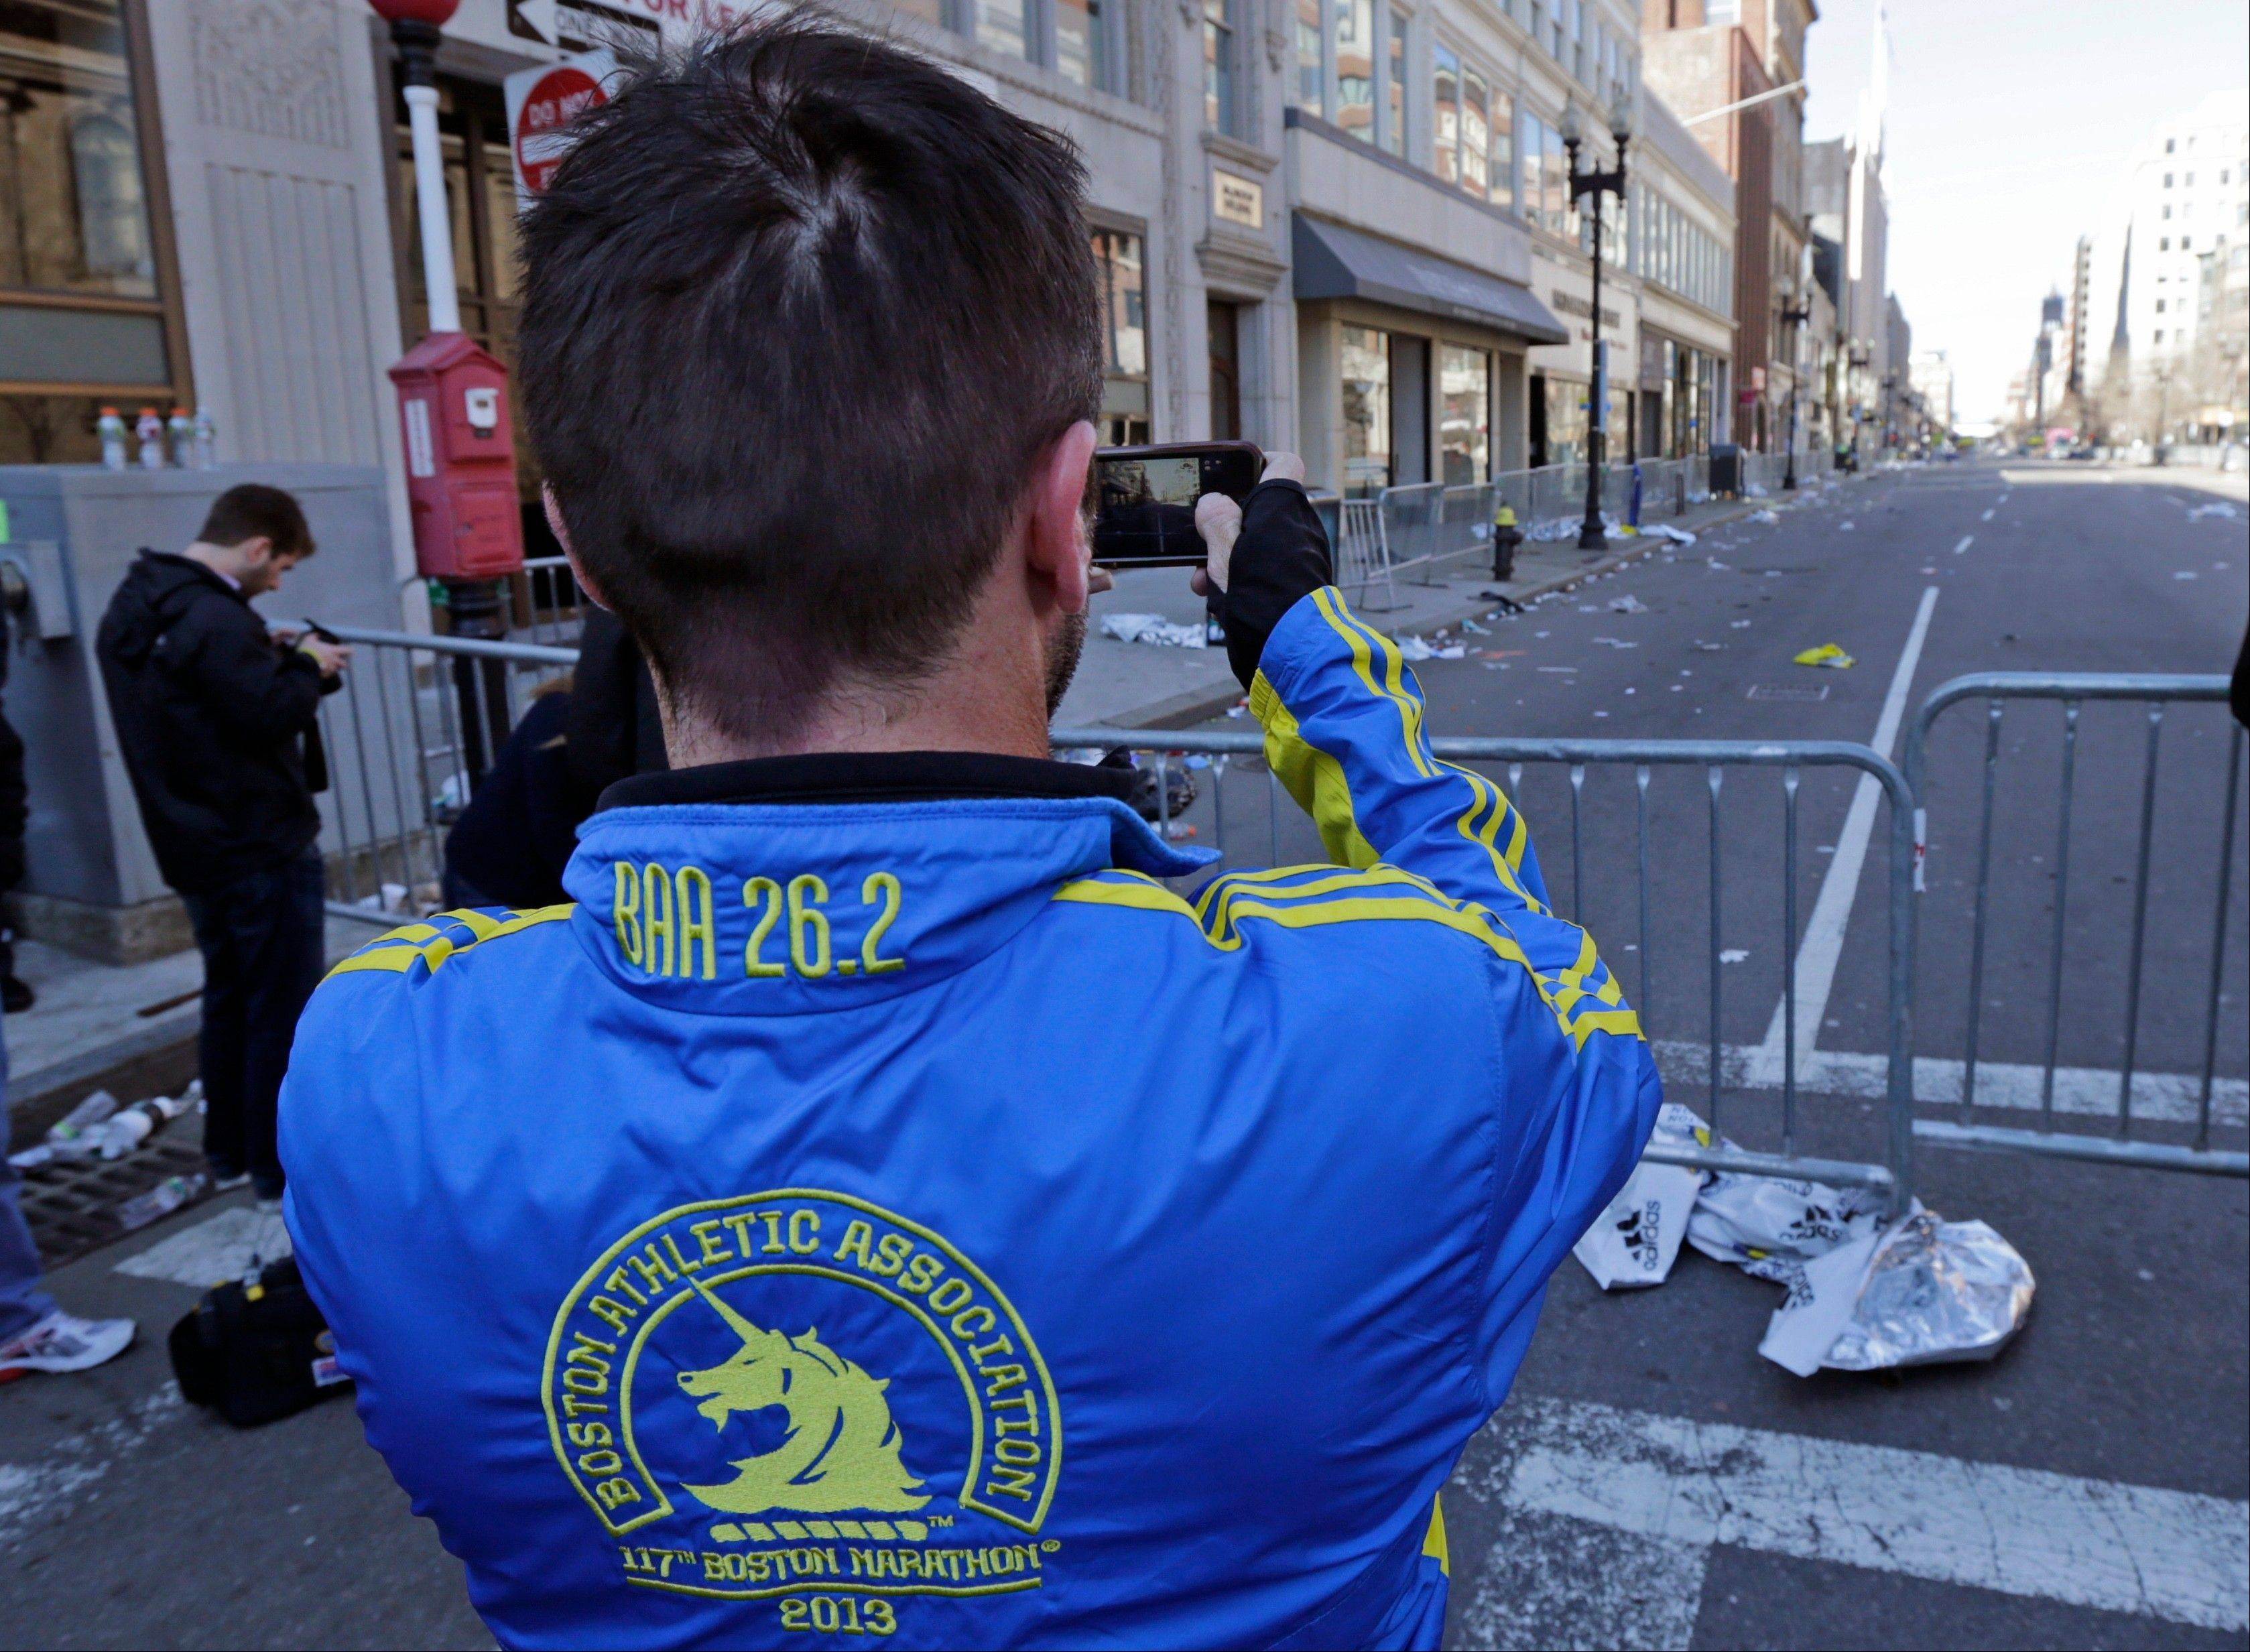 Paul McRae, a native of New Zealand now living in Jacksonville, takes a photograph Tuesday of an empty Boylston Avenue near the Boston Marathon finish line. Police and federal agents appealed to the public Tuesday for amateur video and photos that might yield clues to the Boston Marathon bombing.